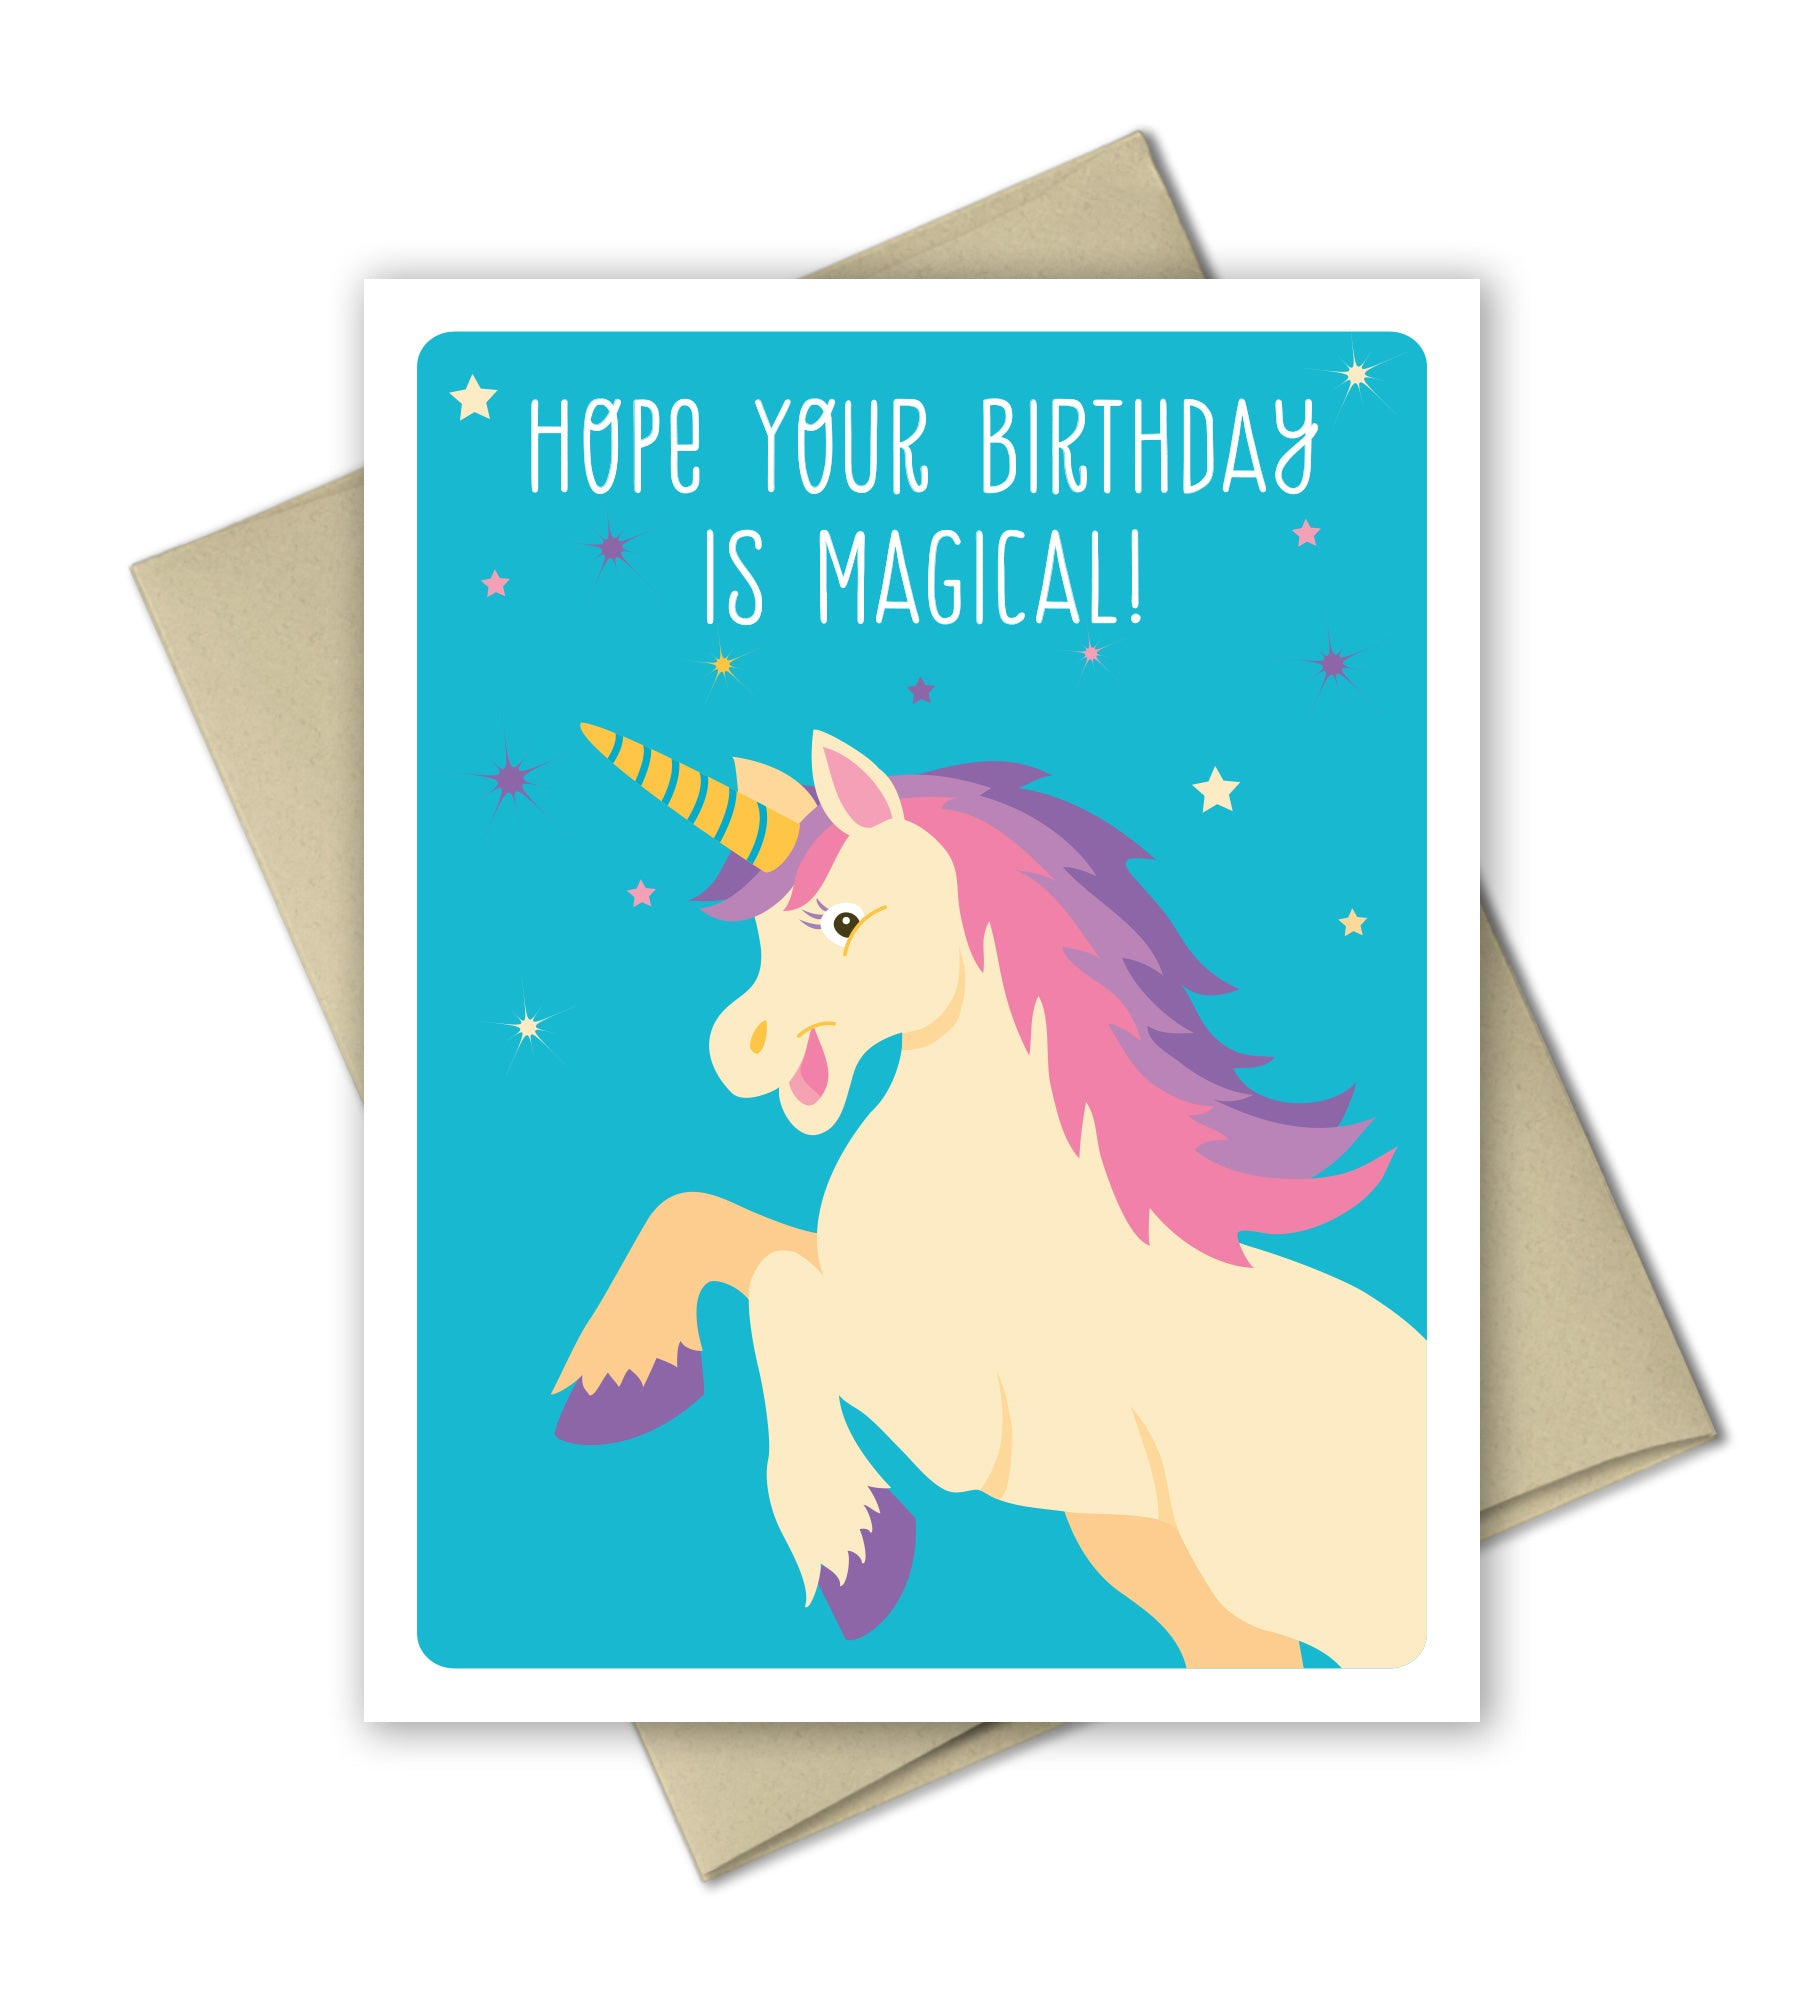 Unicorn birthday card magical birthday the imagination spot unicorn birthday card magical birthday by the imagination spot the imagination spot bookmarktalkfo Image collections